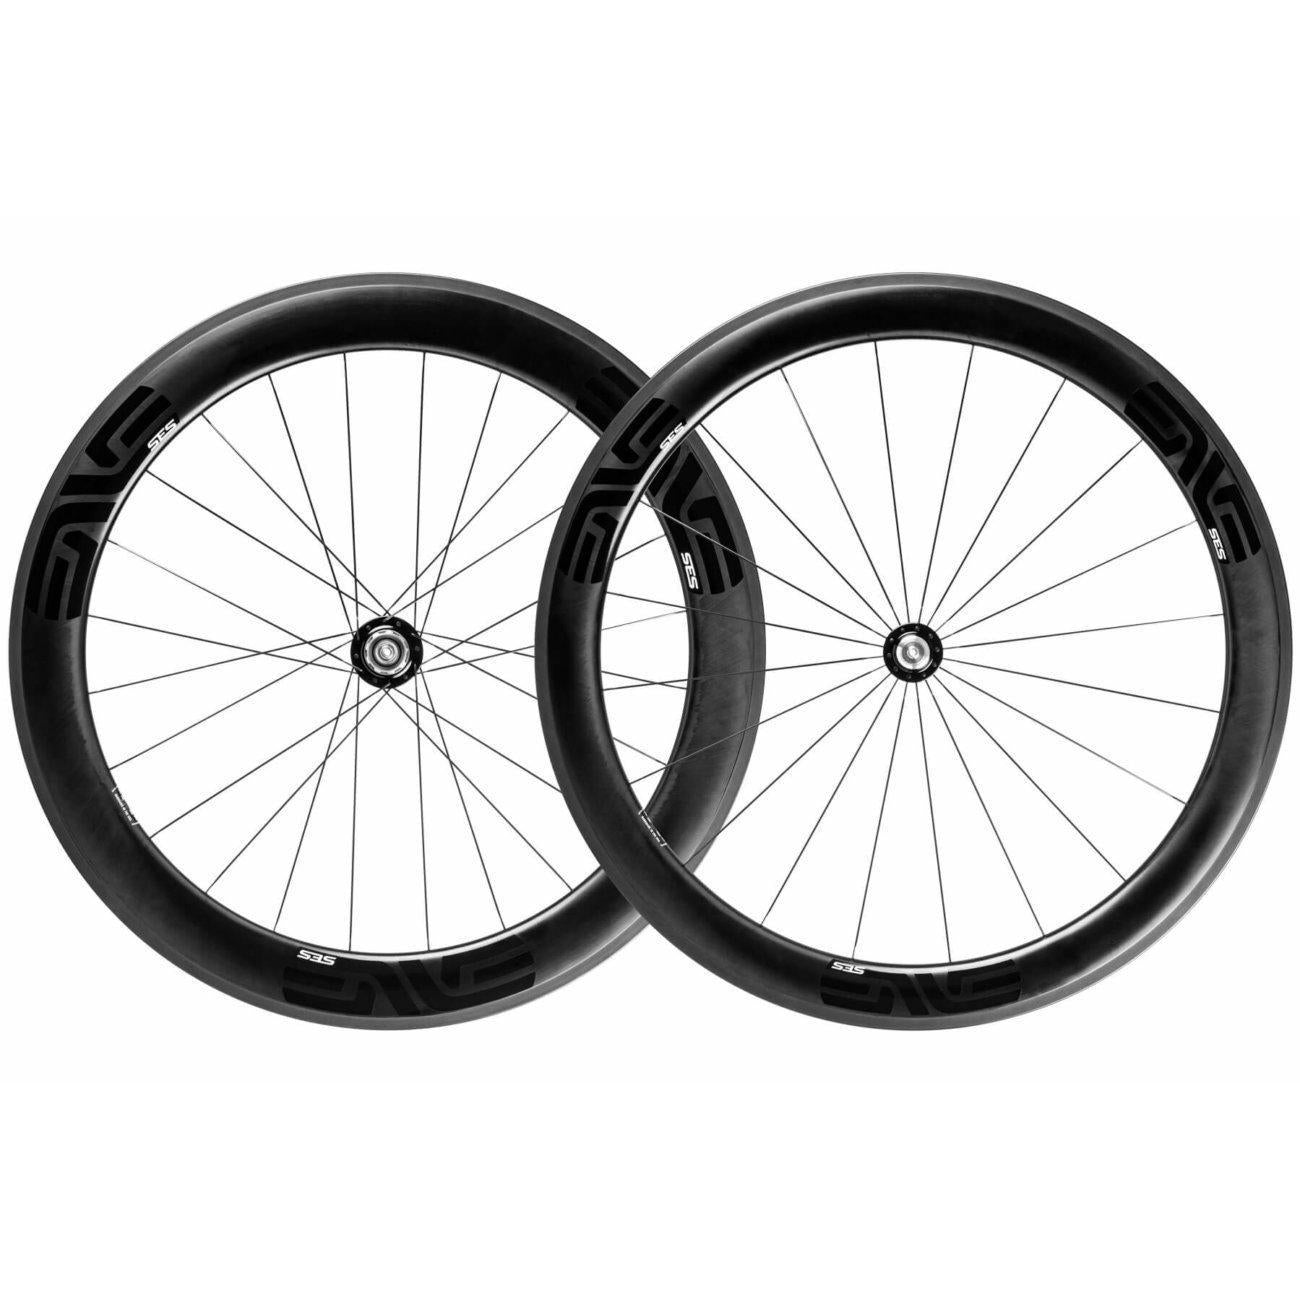 ENVE SES 5.6 Wheelset - Rim Brake